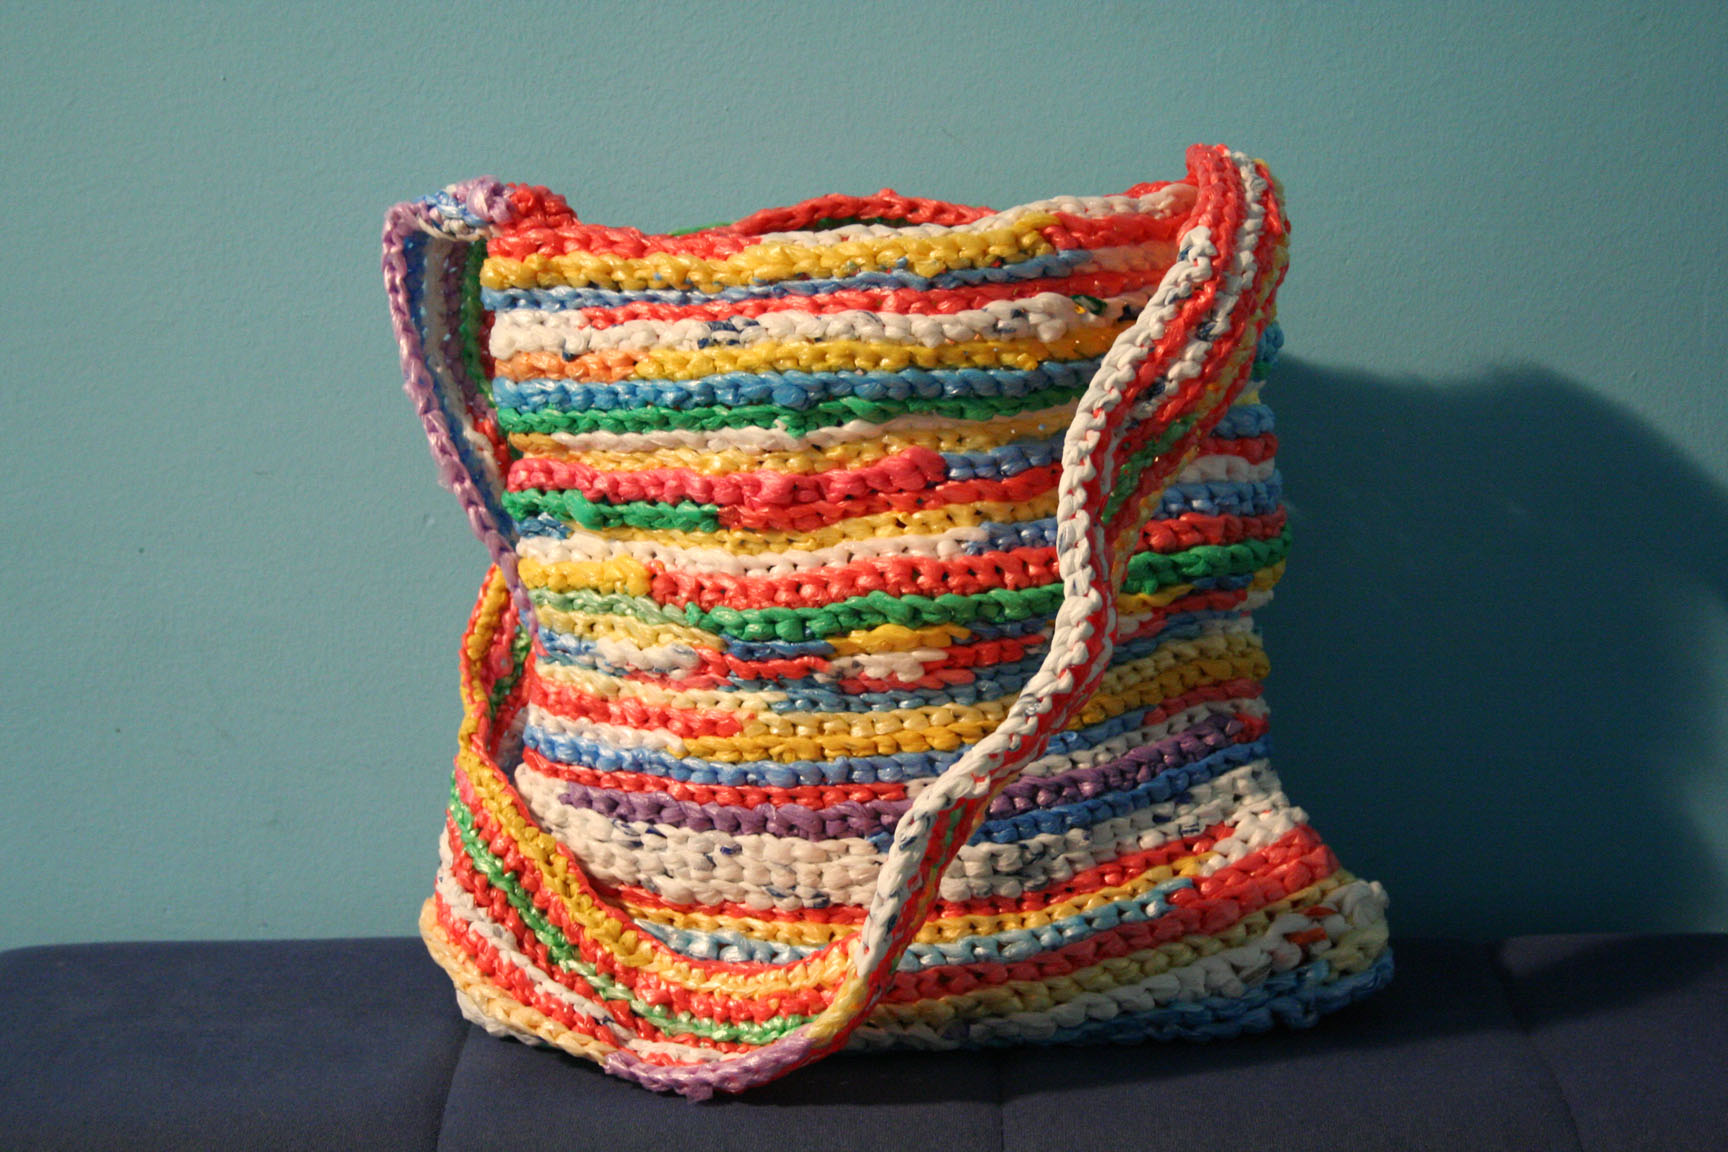 Grocery Bag Crochet : Crocheted Plastic Bag Shoulder Bag (made by Kisha of Serbia ...